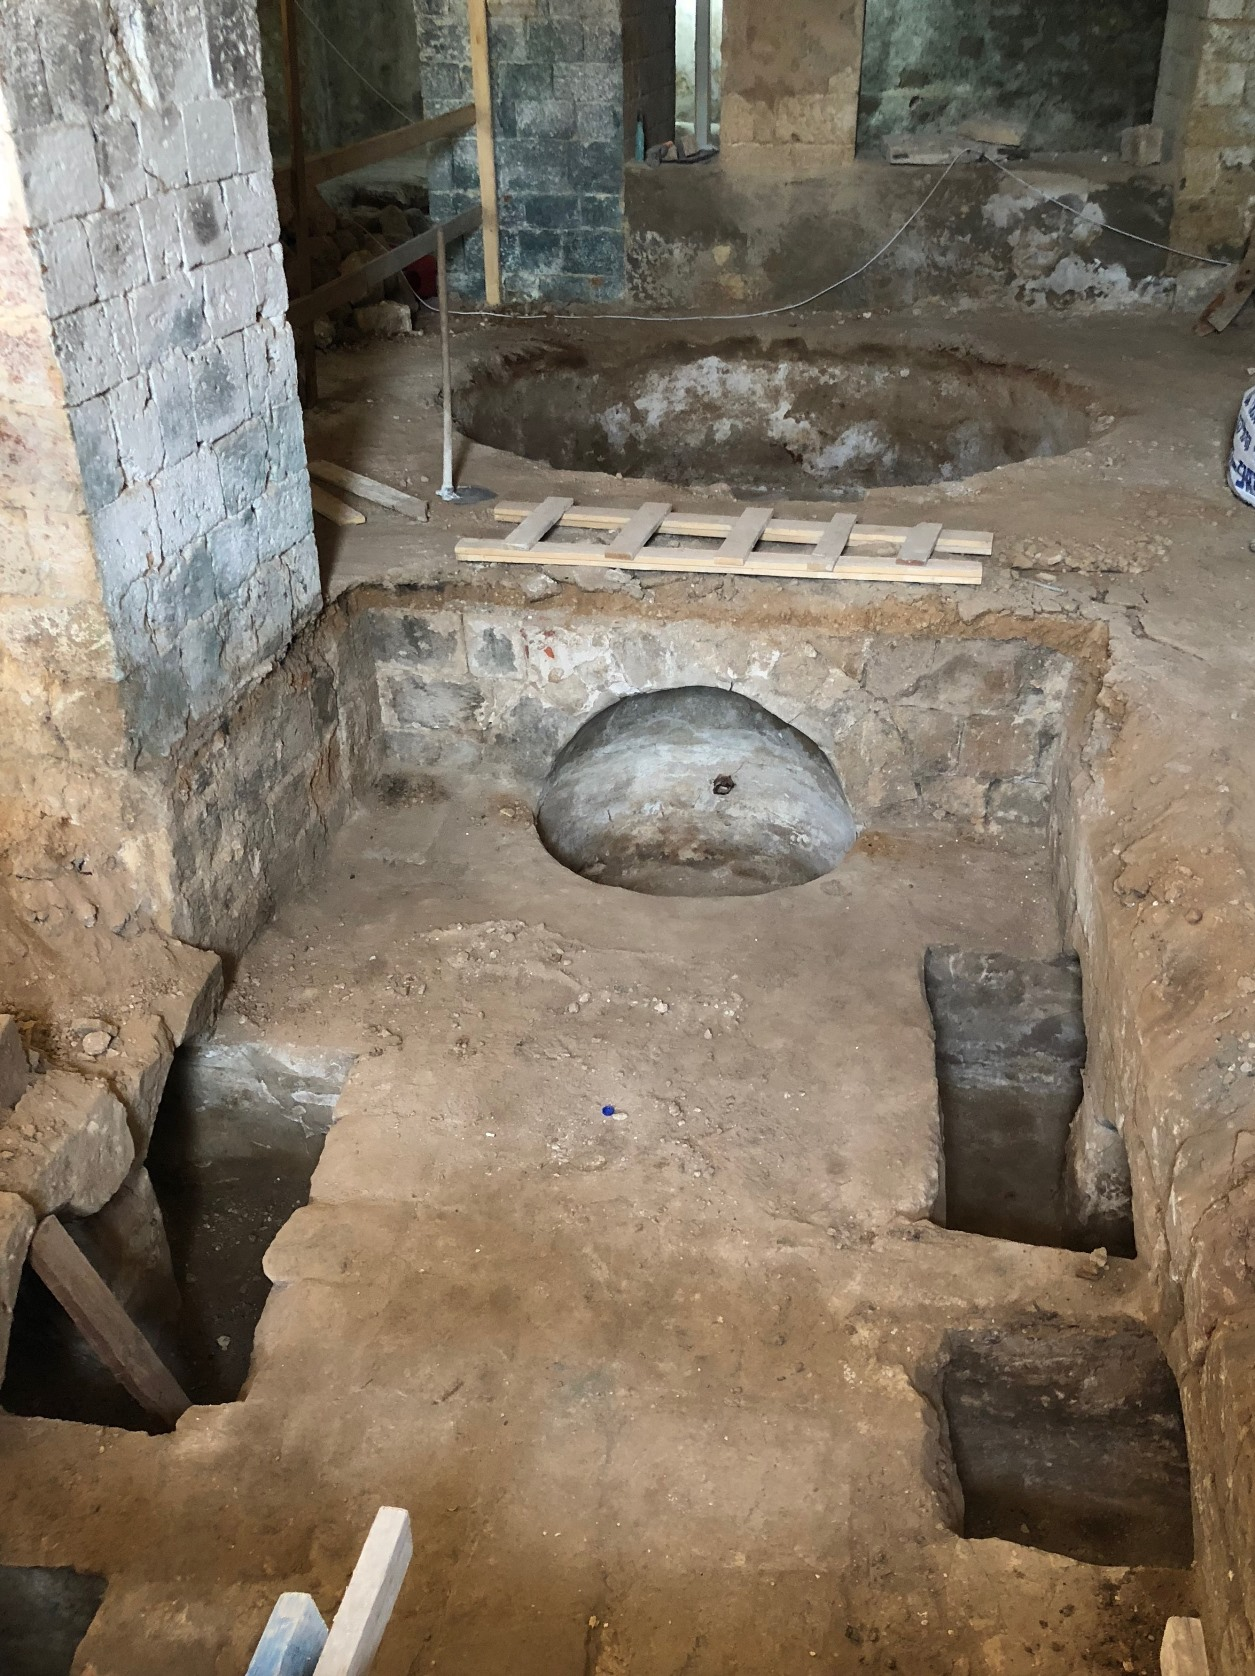 The soap factory unearthed in the Ottoman structure in Jaffa. Photo by Dlila Bar-Ratson/IAA